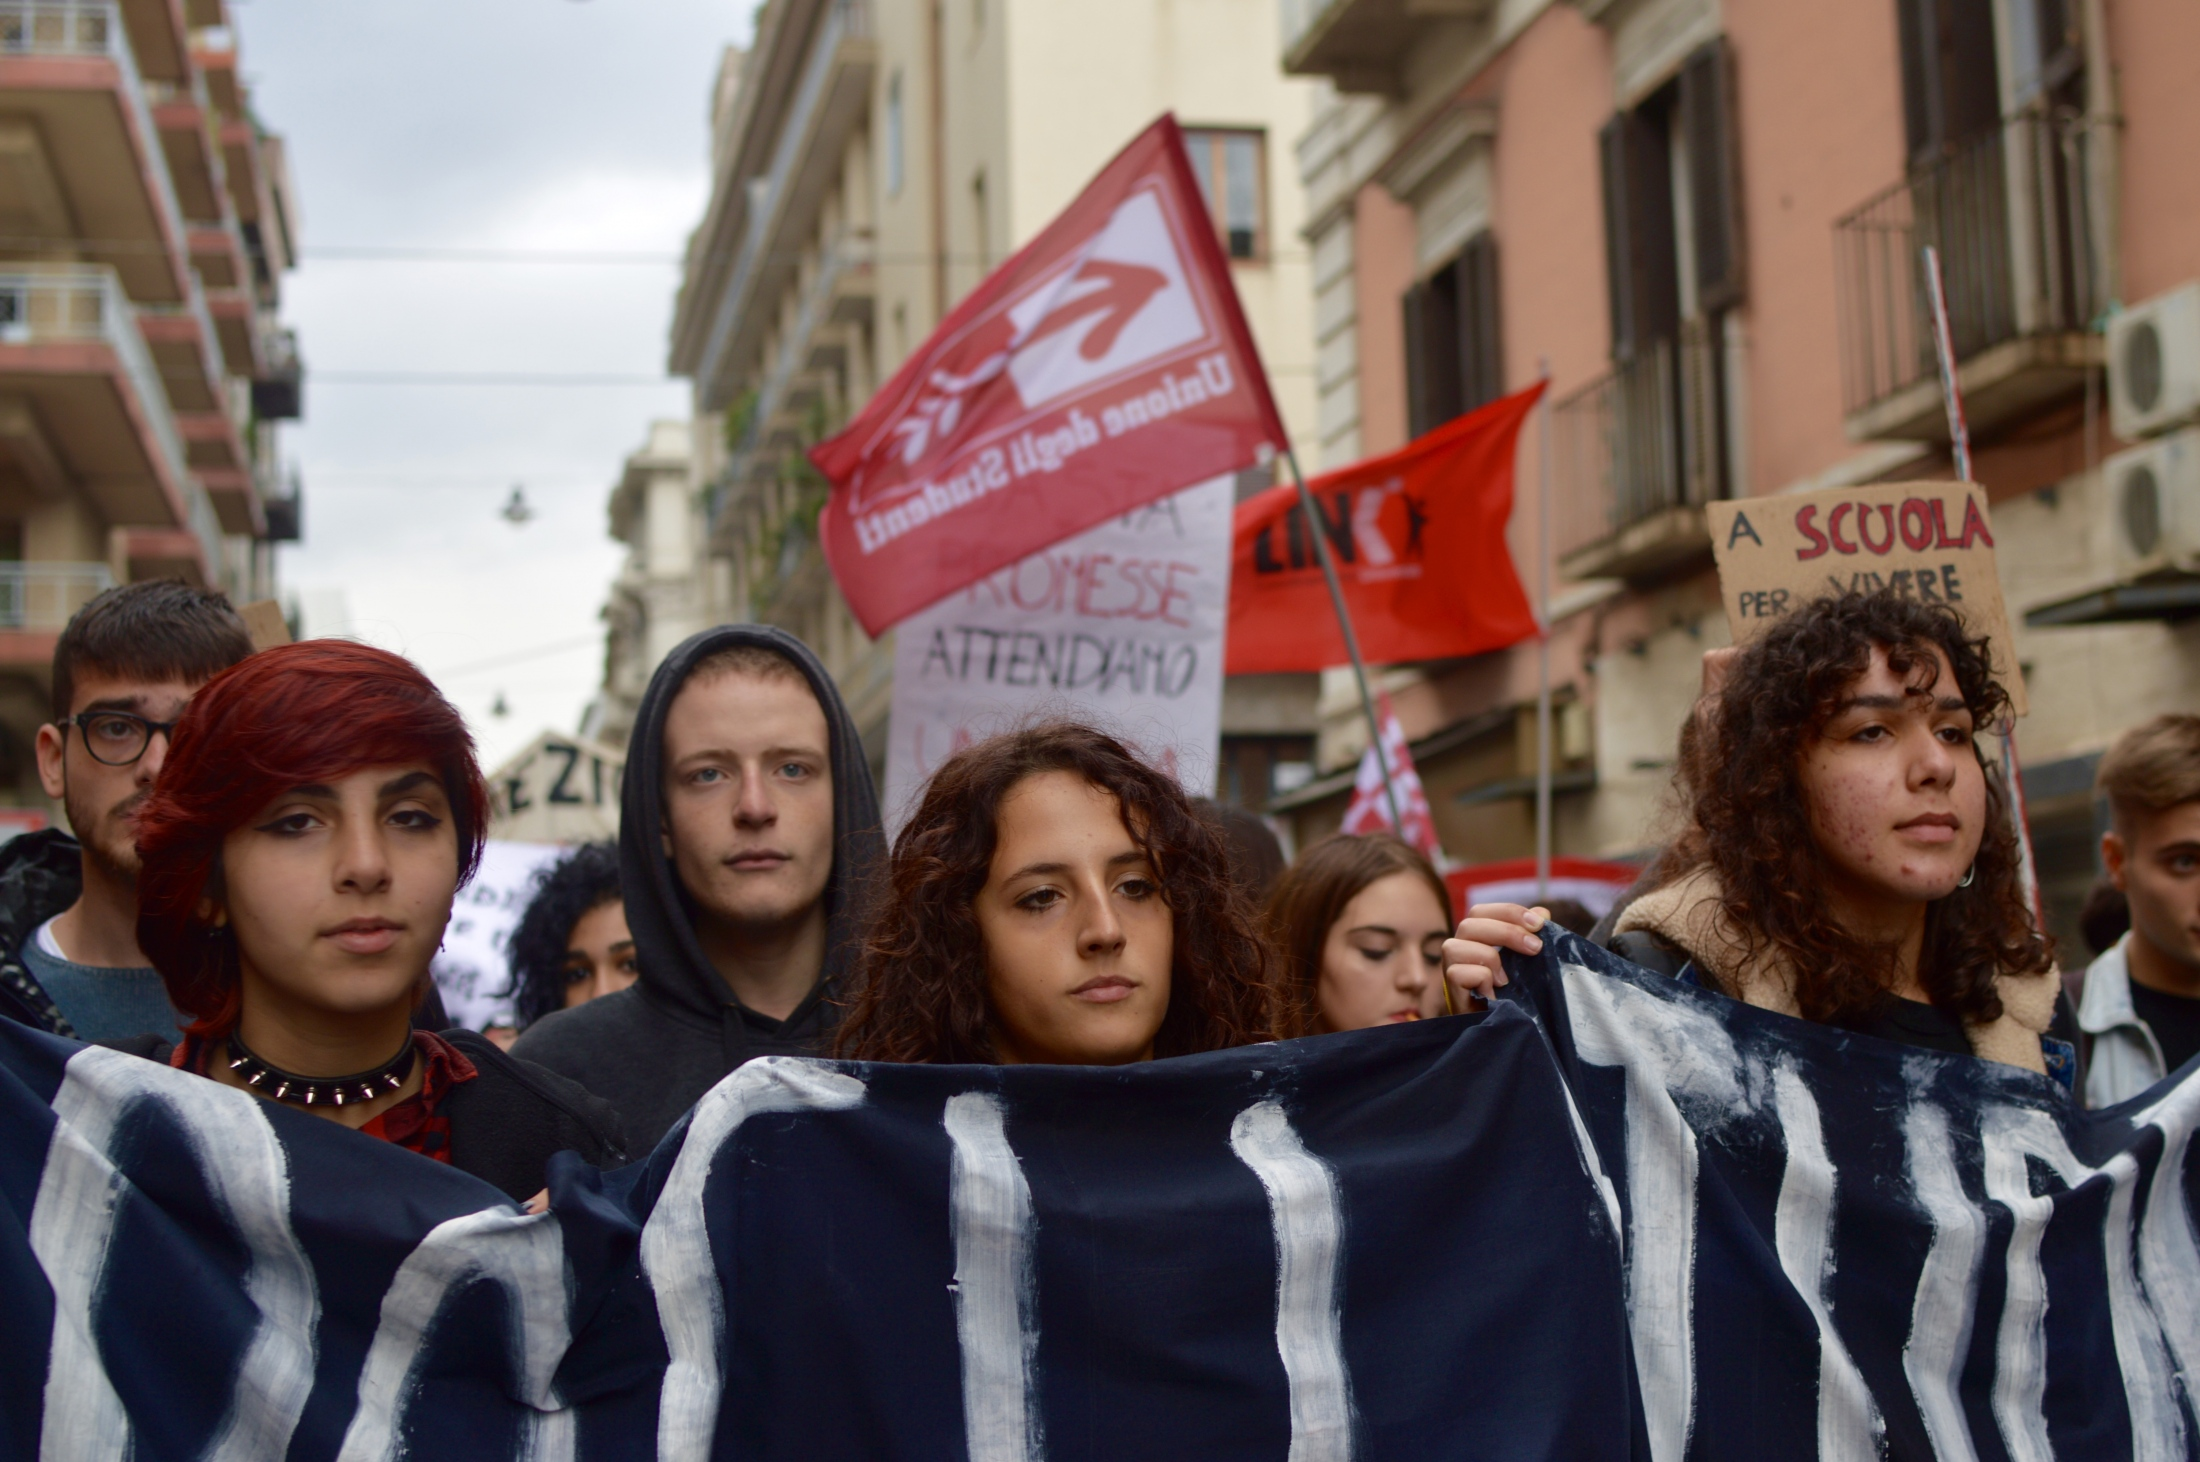 Young students attend a protest against the country's highly centralised education system and looming cuts targeting the peripheries of the south, Bari, March 2019